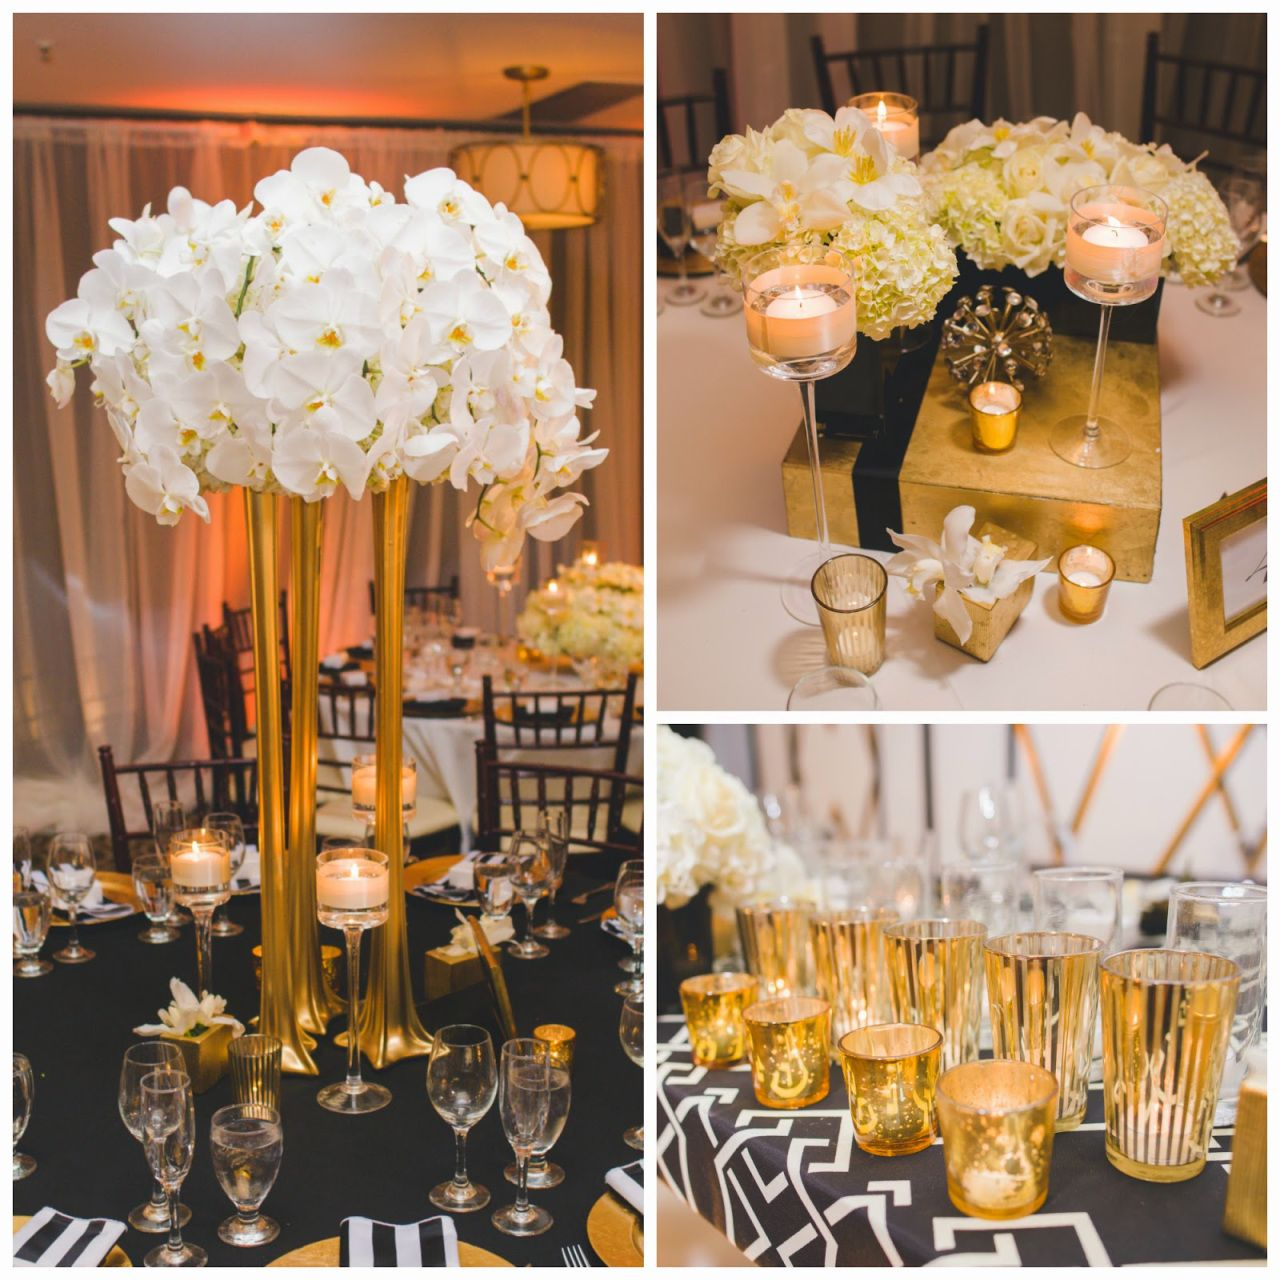 Wedding decorations black and gold  Real Wedding Art Deco White Black and Gold Wedding at Los Verdes